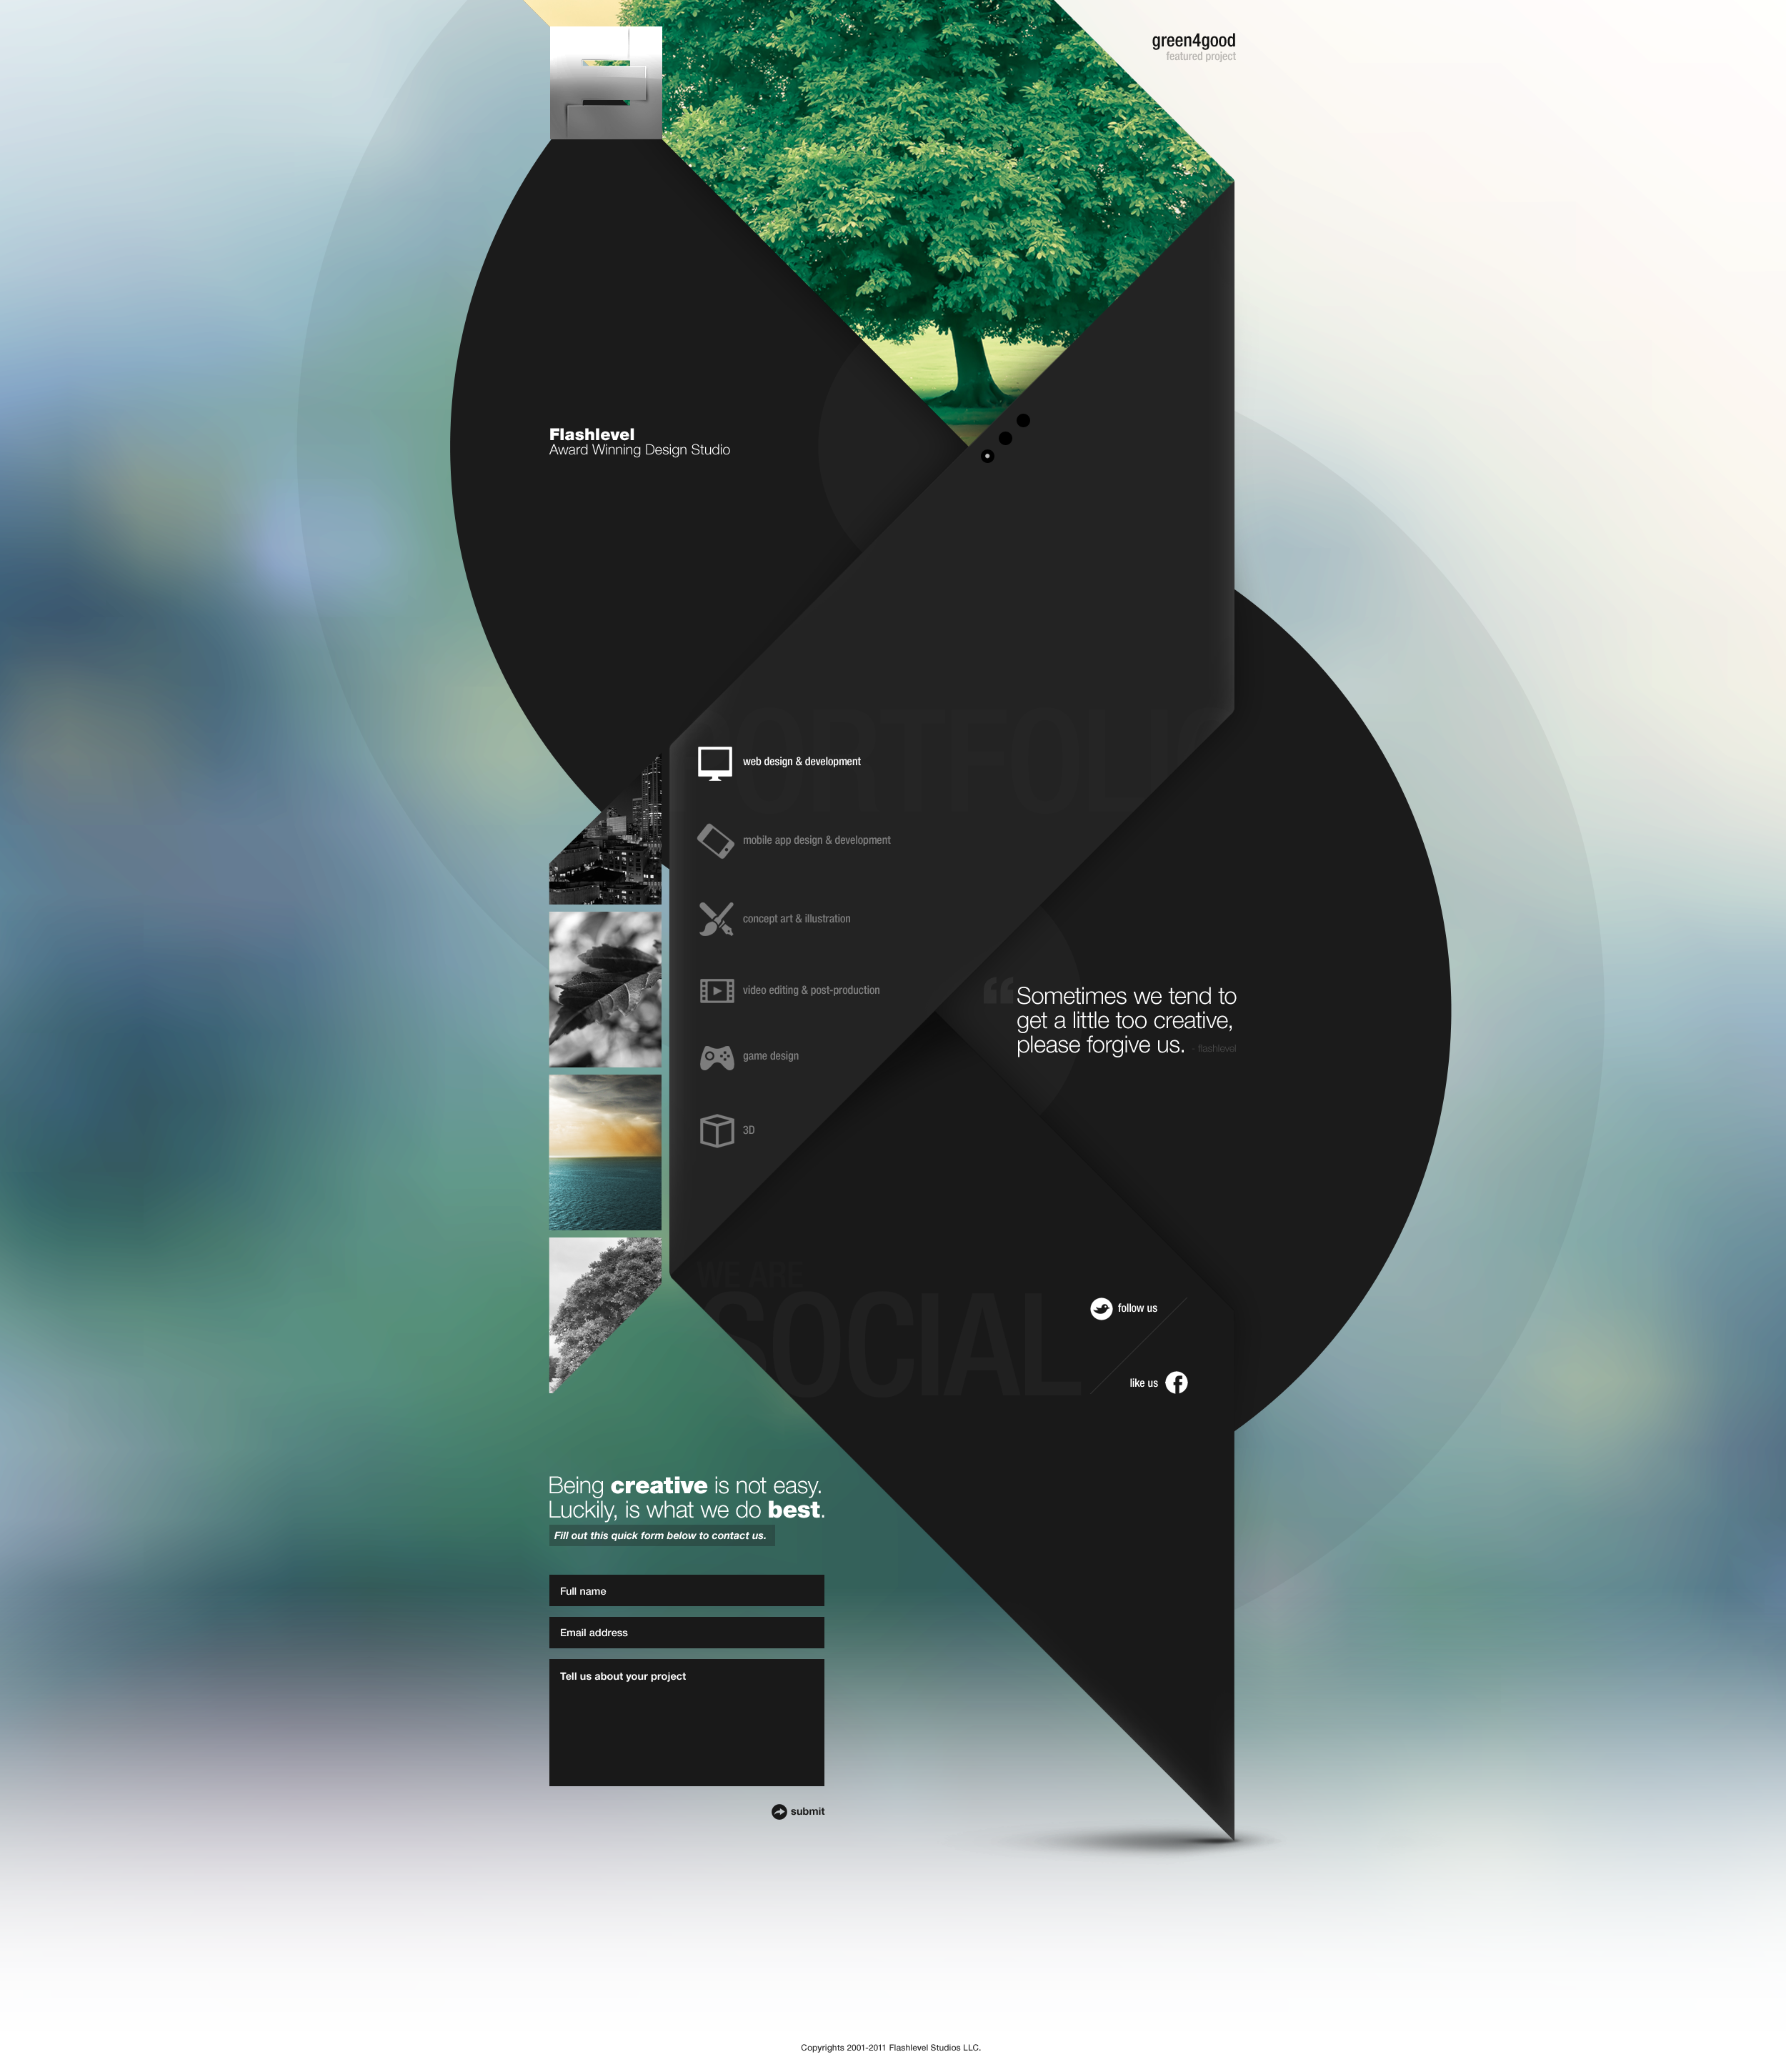 Portfolio Design Ideas 25 really beautiful brochure designs templates for inspiration graphics galore pinterest beautiful uxui designer and template 4 Lois Jeans Fashion Design Portfolio Idea Para Guardar Las